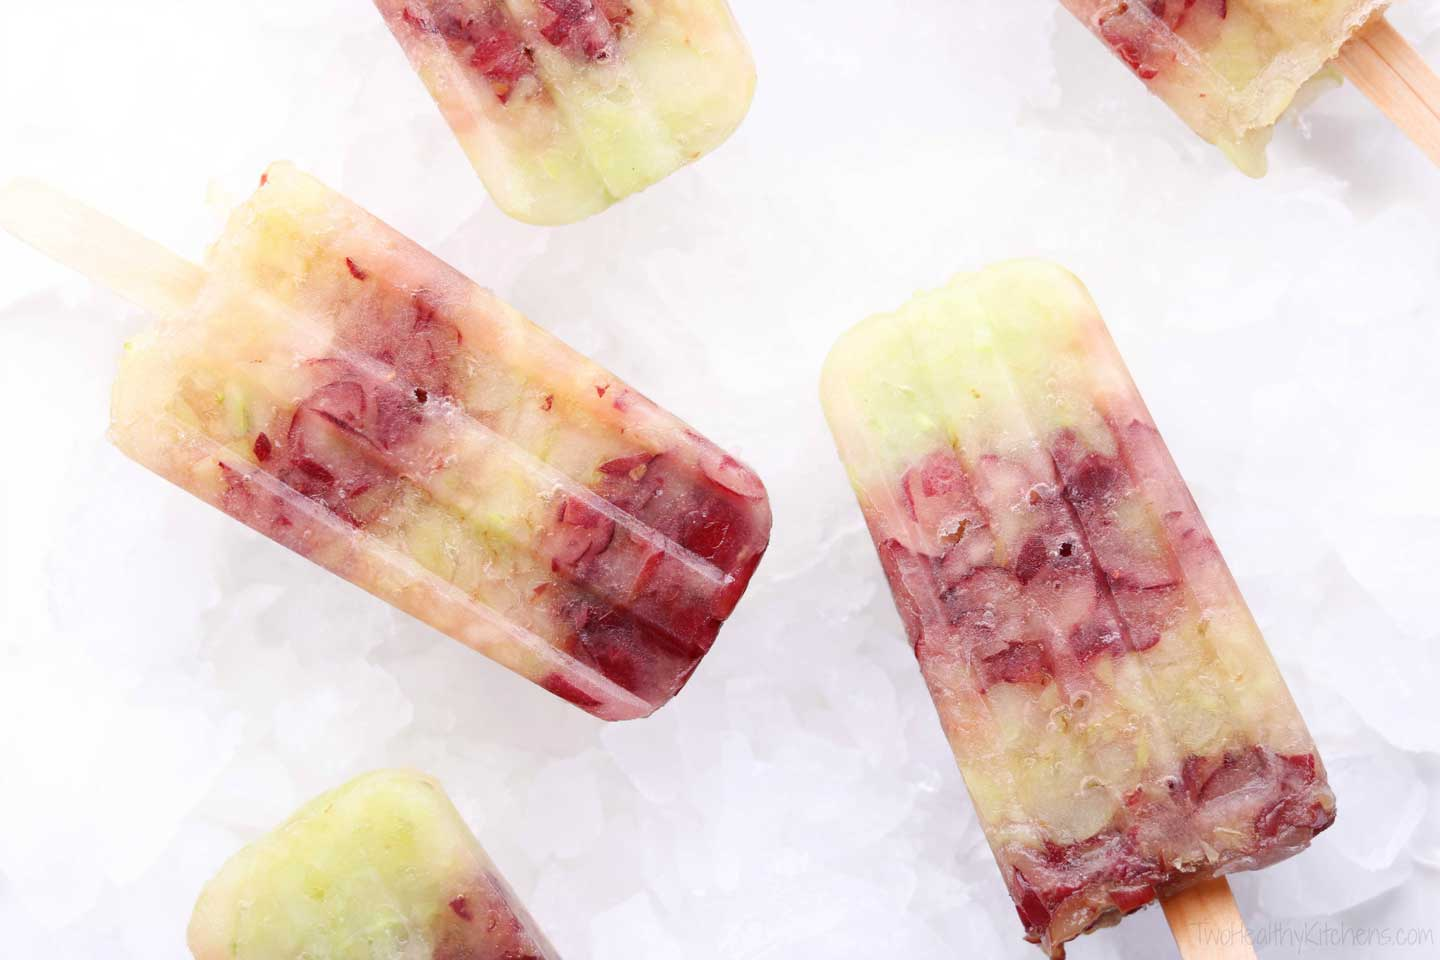 Frozen grapes are deliciously transformed into perfectly simple, amazingly refreshing popsicles! So easy to make! My absolute favorite summer post-workout snack! | www.TwoHealthyKitchens.com